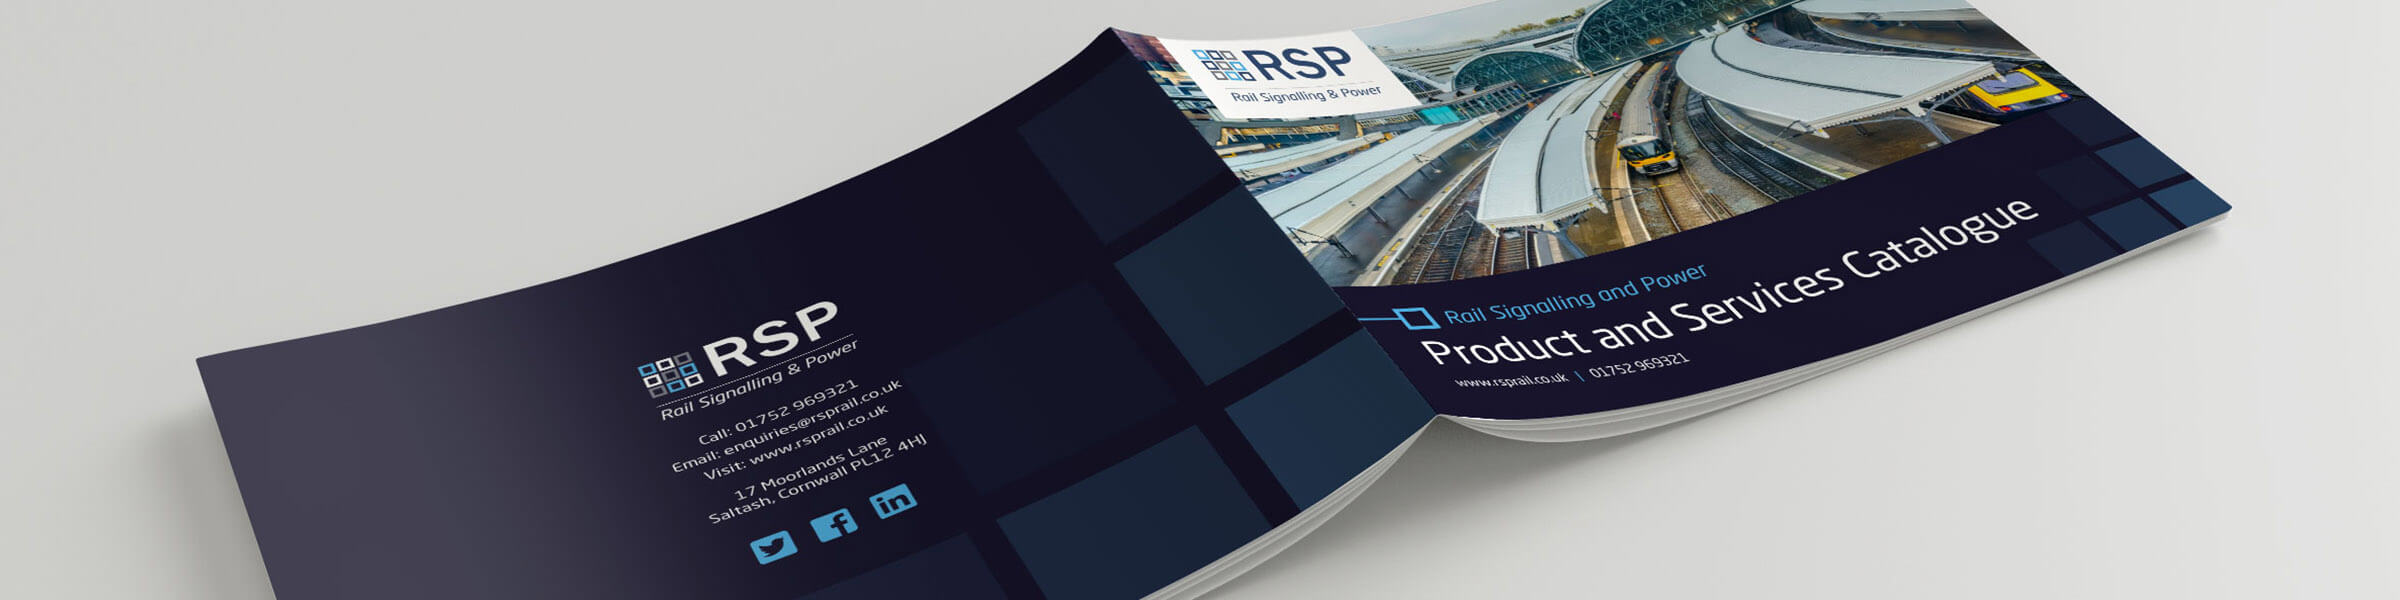 We've just launched a pretty slick new technical e-brochure